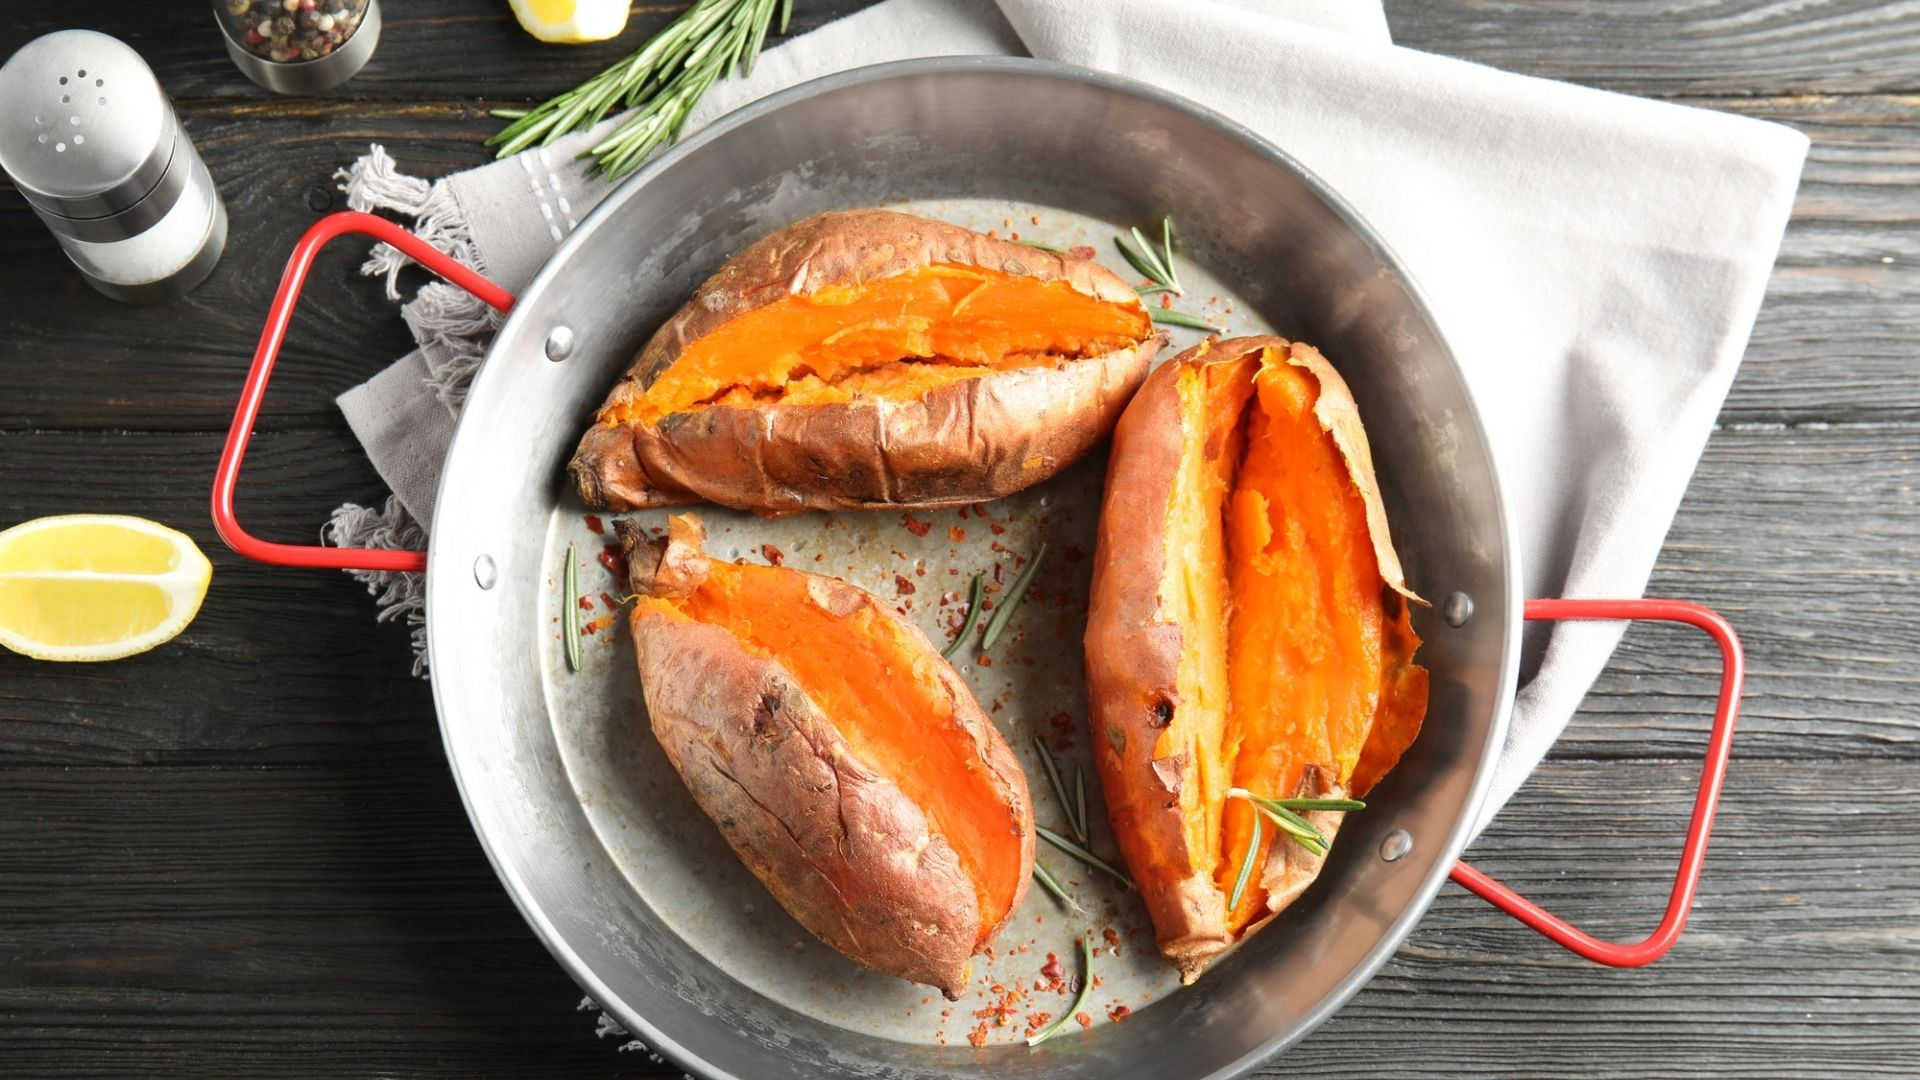 Sweet Potatoes Baked in a Toaster Oven